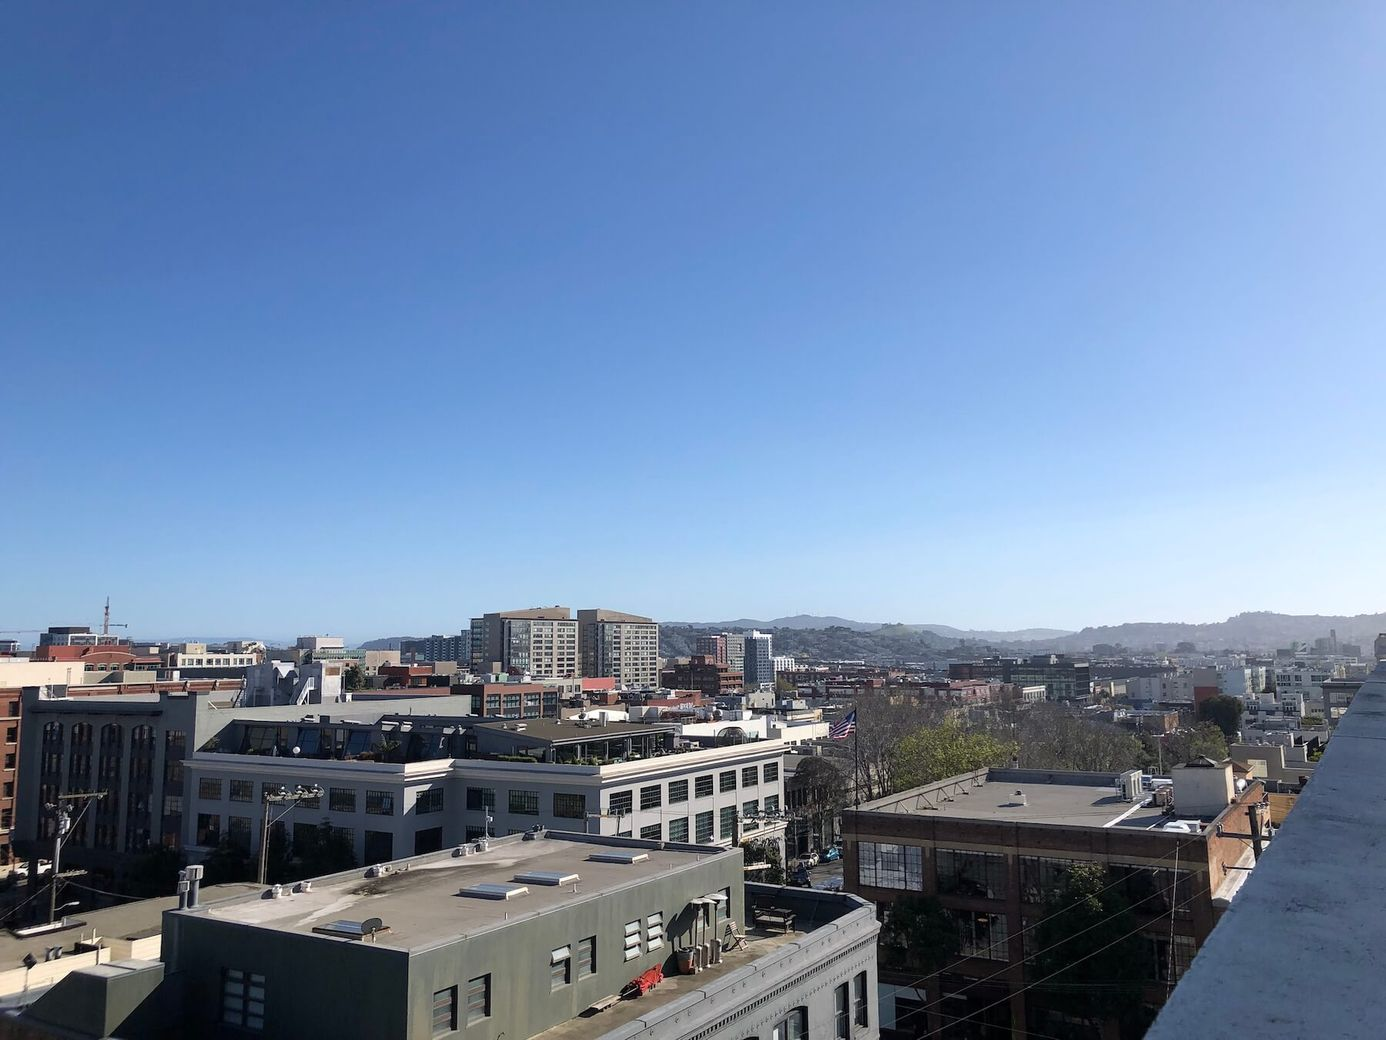 The view from Spoke's rooftop